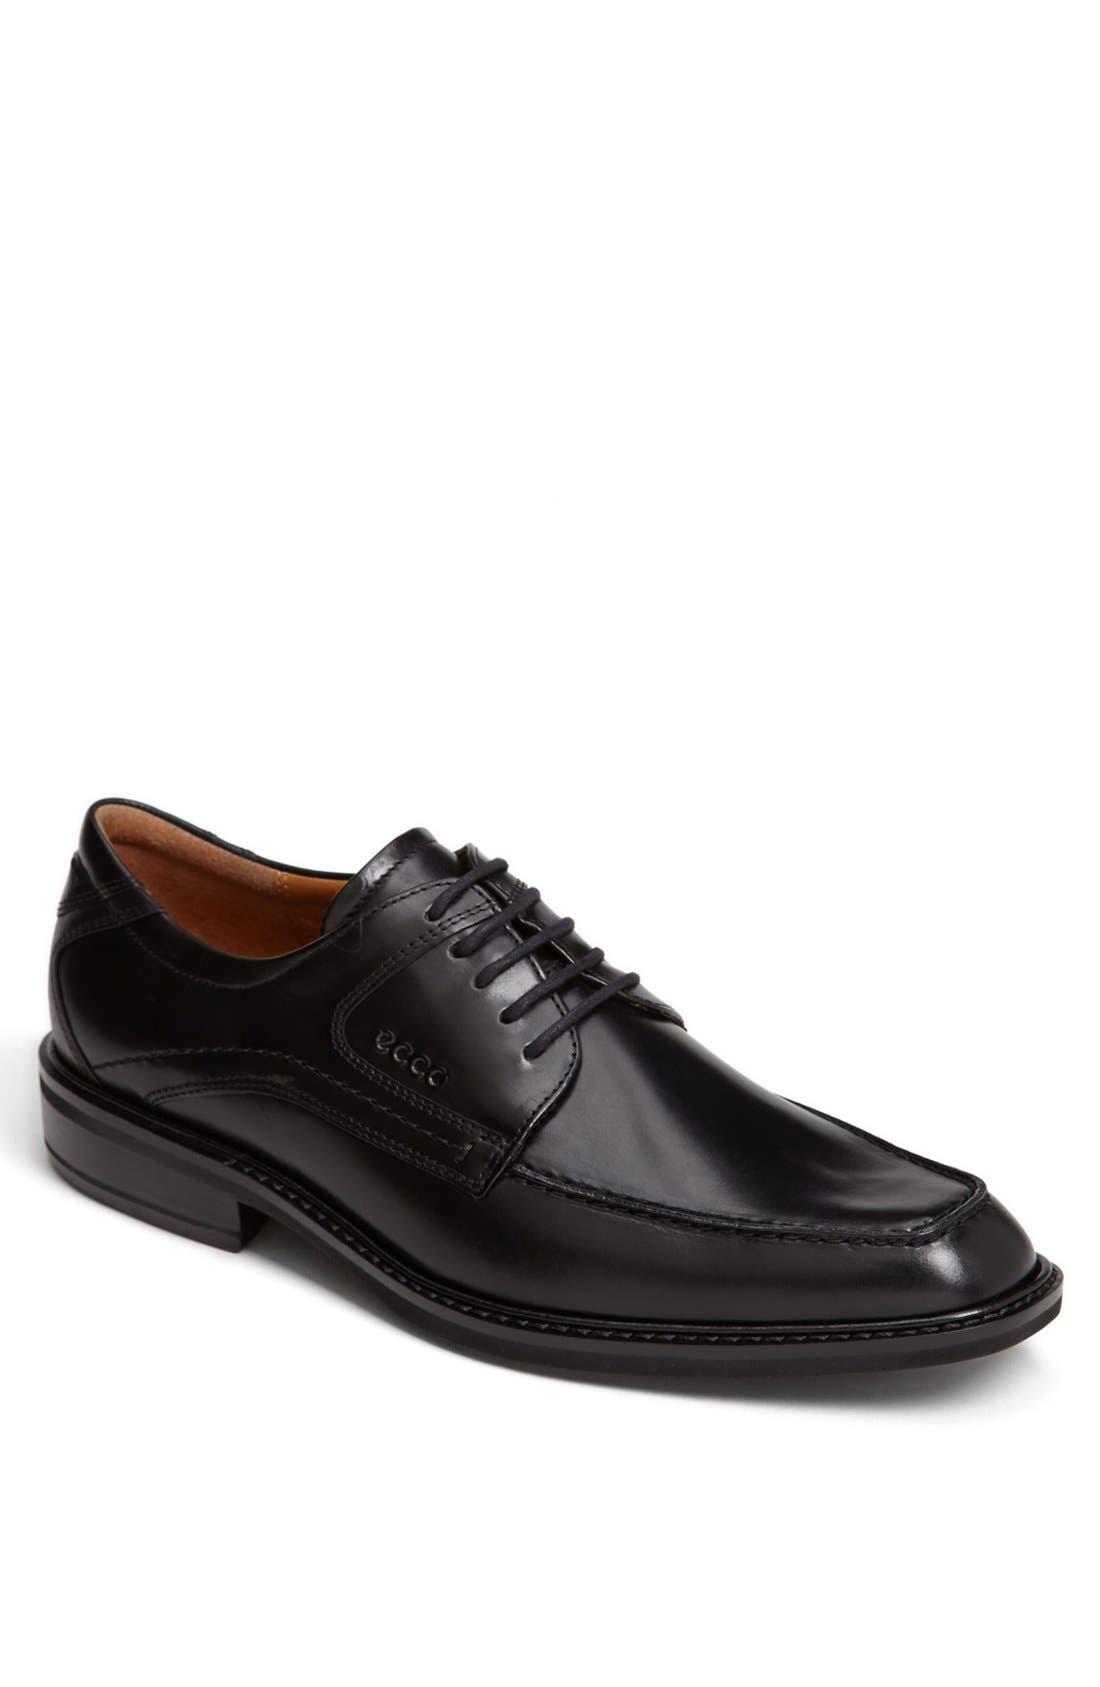 Main Image - ECCO 'Windsor' Apron Toe Derby (Men)